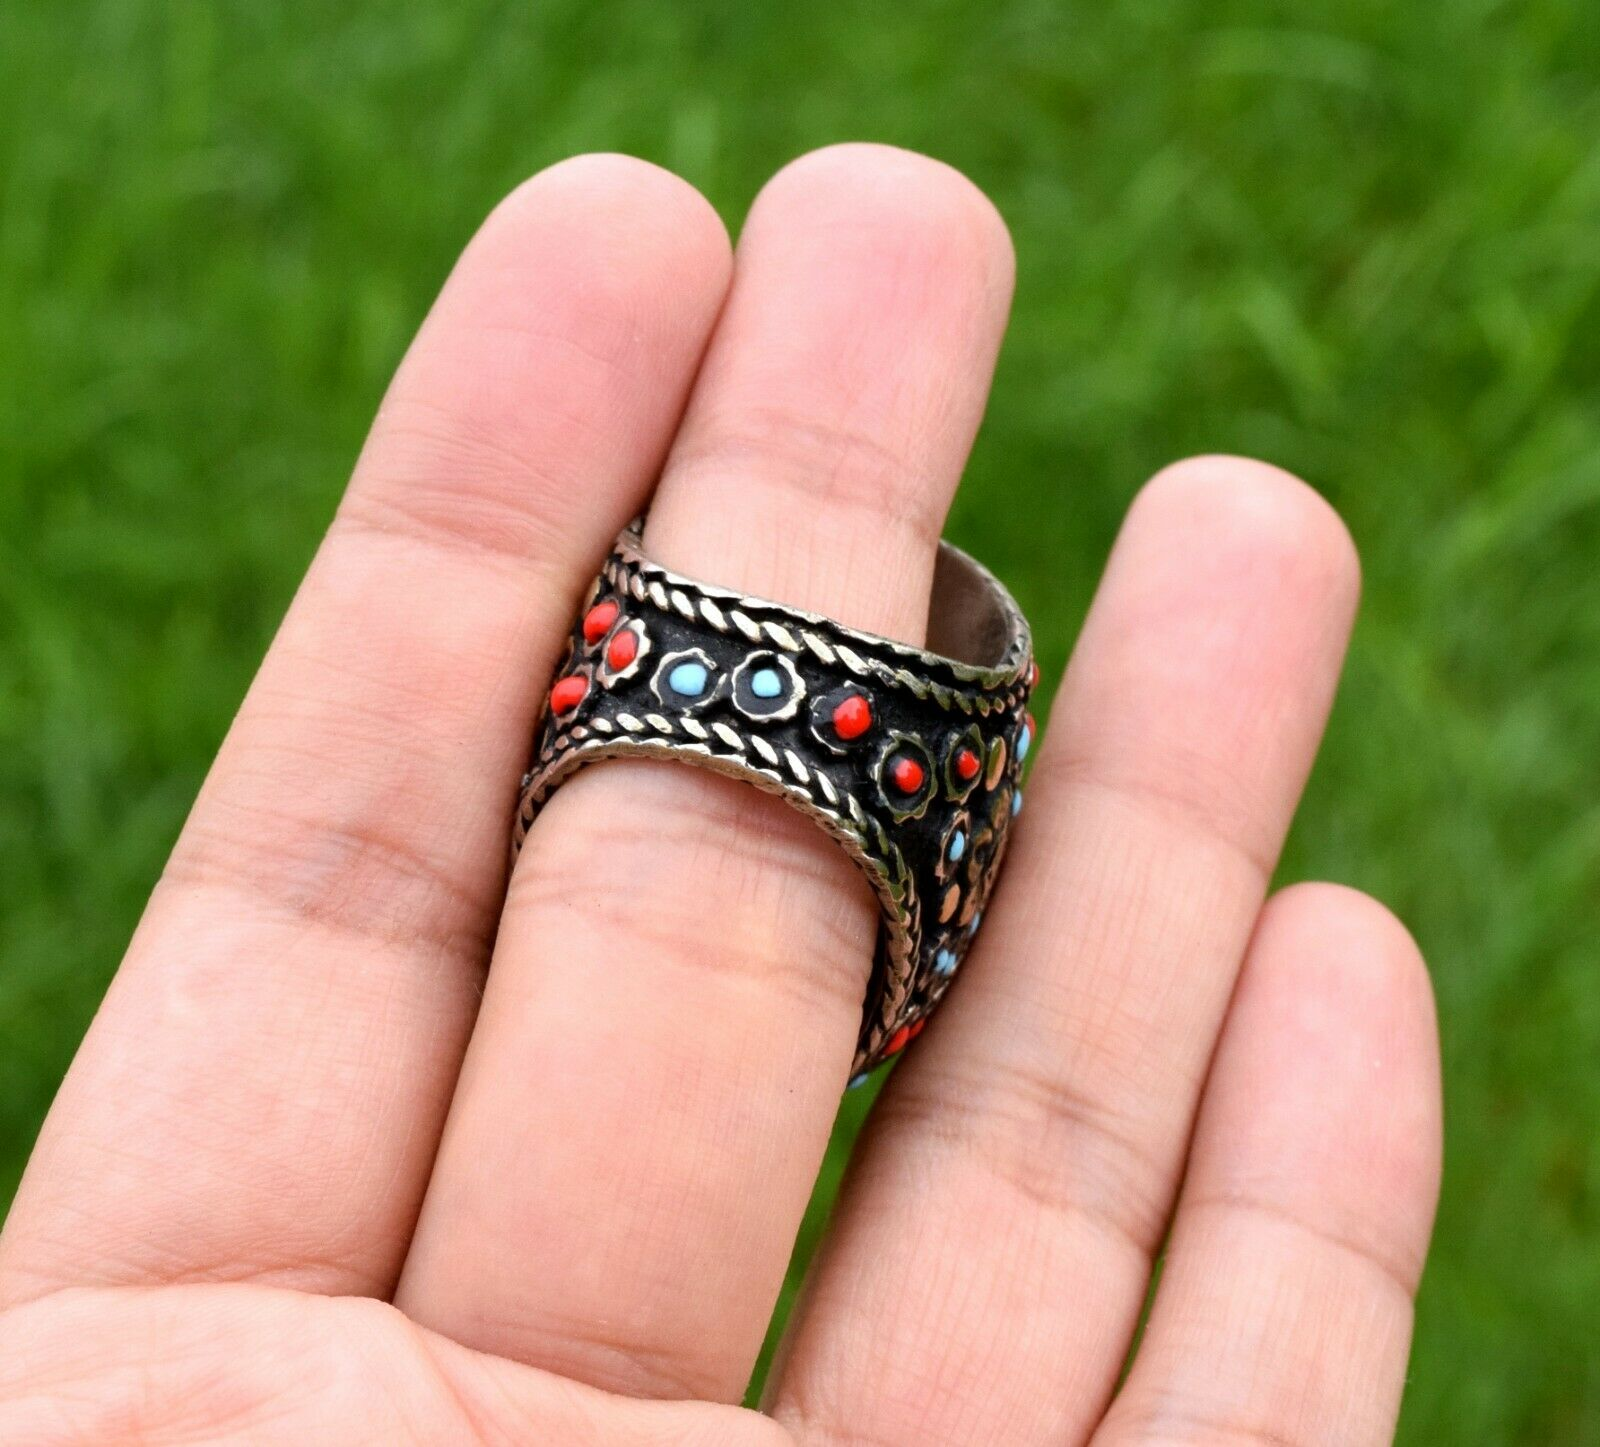 Ethnic Jewelry Ethnic Ring Bohemian Jewelry Blue Ring Tribal Jewelry Boho Ring Adjustable Ring Triangle Ring Gypsy Ring Tribal Ring